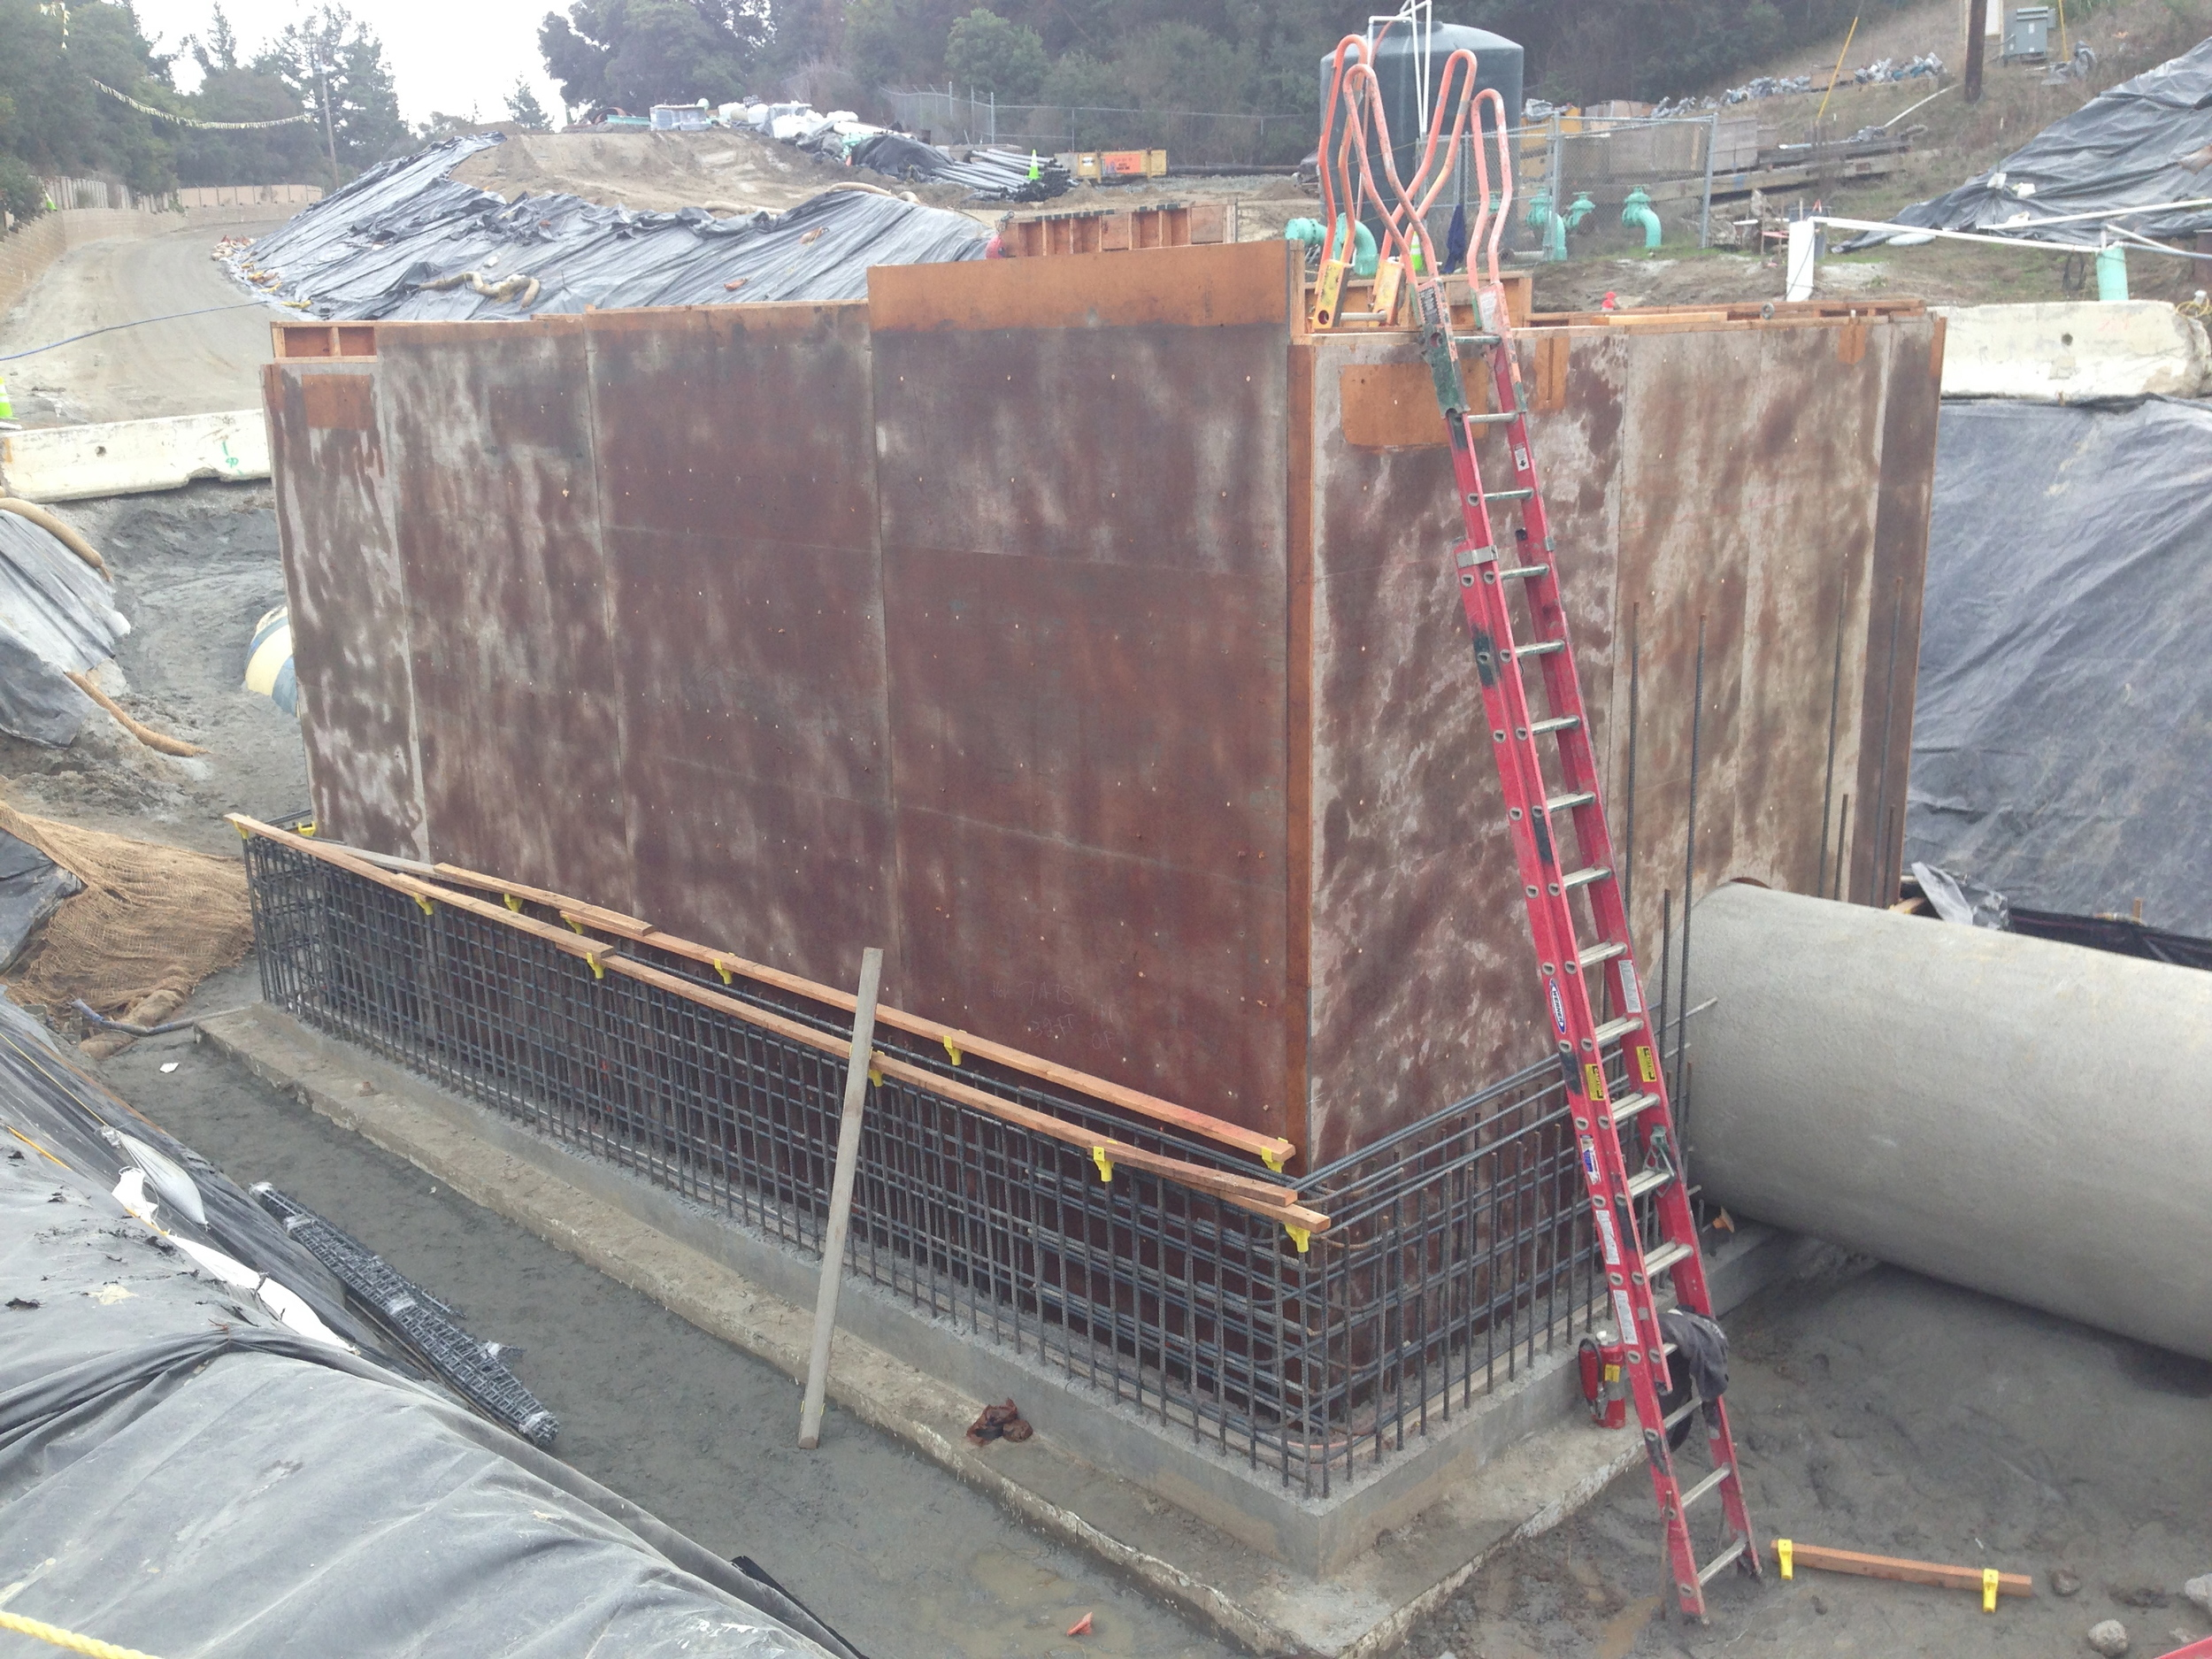 This wall rebar and formwork is in place for a new vault for the Venturi meter.The meter uses a converging section of pipe converging section of pipe to give an increase in the flow velocity and a corresponding pressure drop from which the flow rate can be calculated.